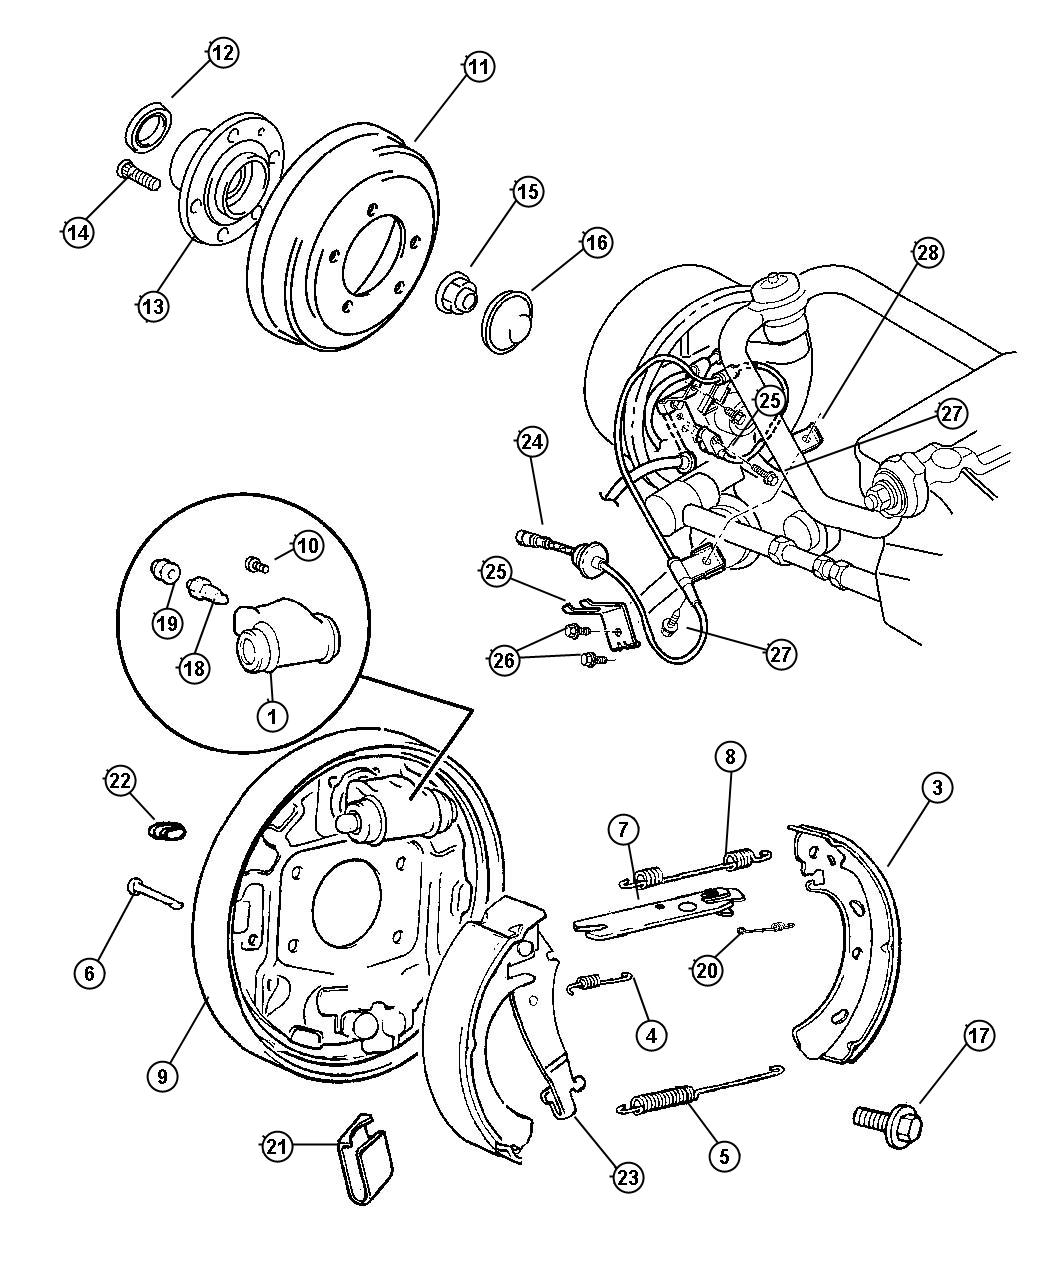 Service manual [Rear Drum Removal 2000 Plymouth Breeze